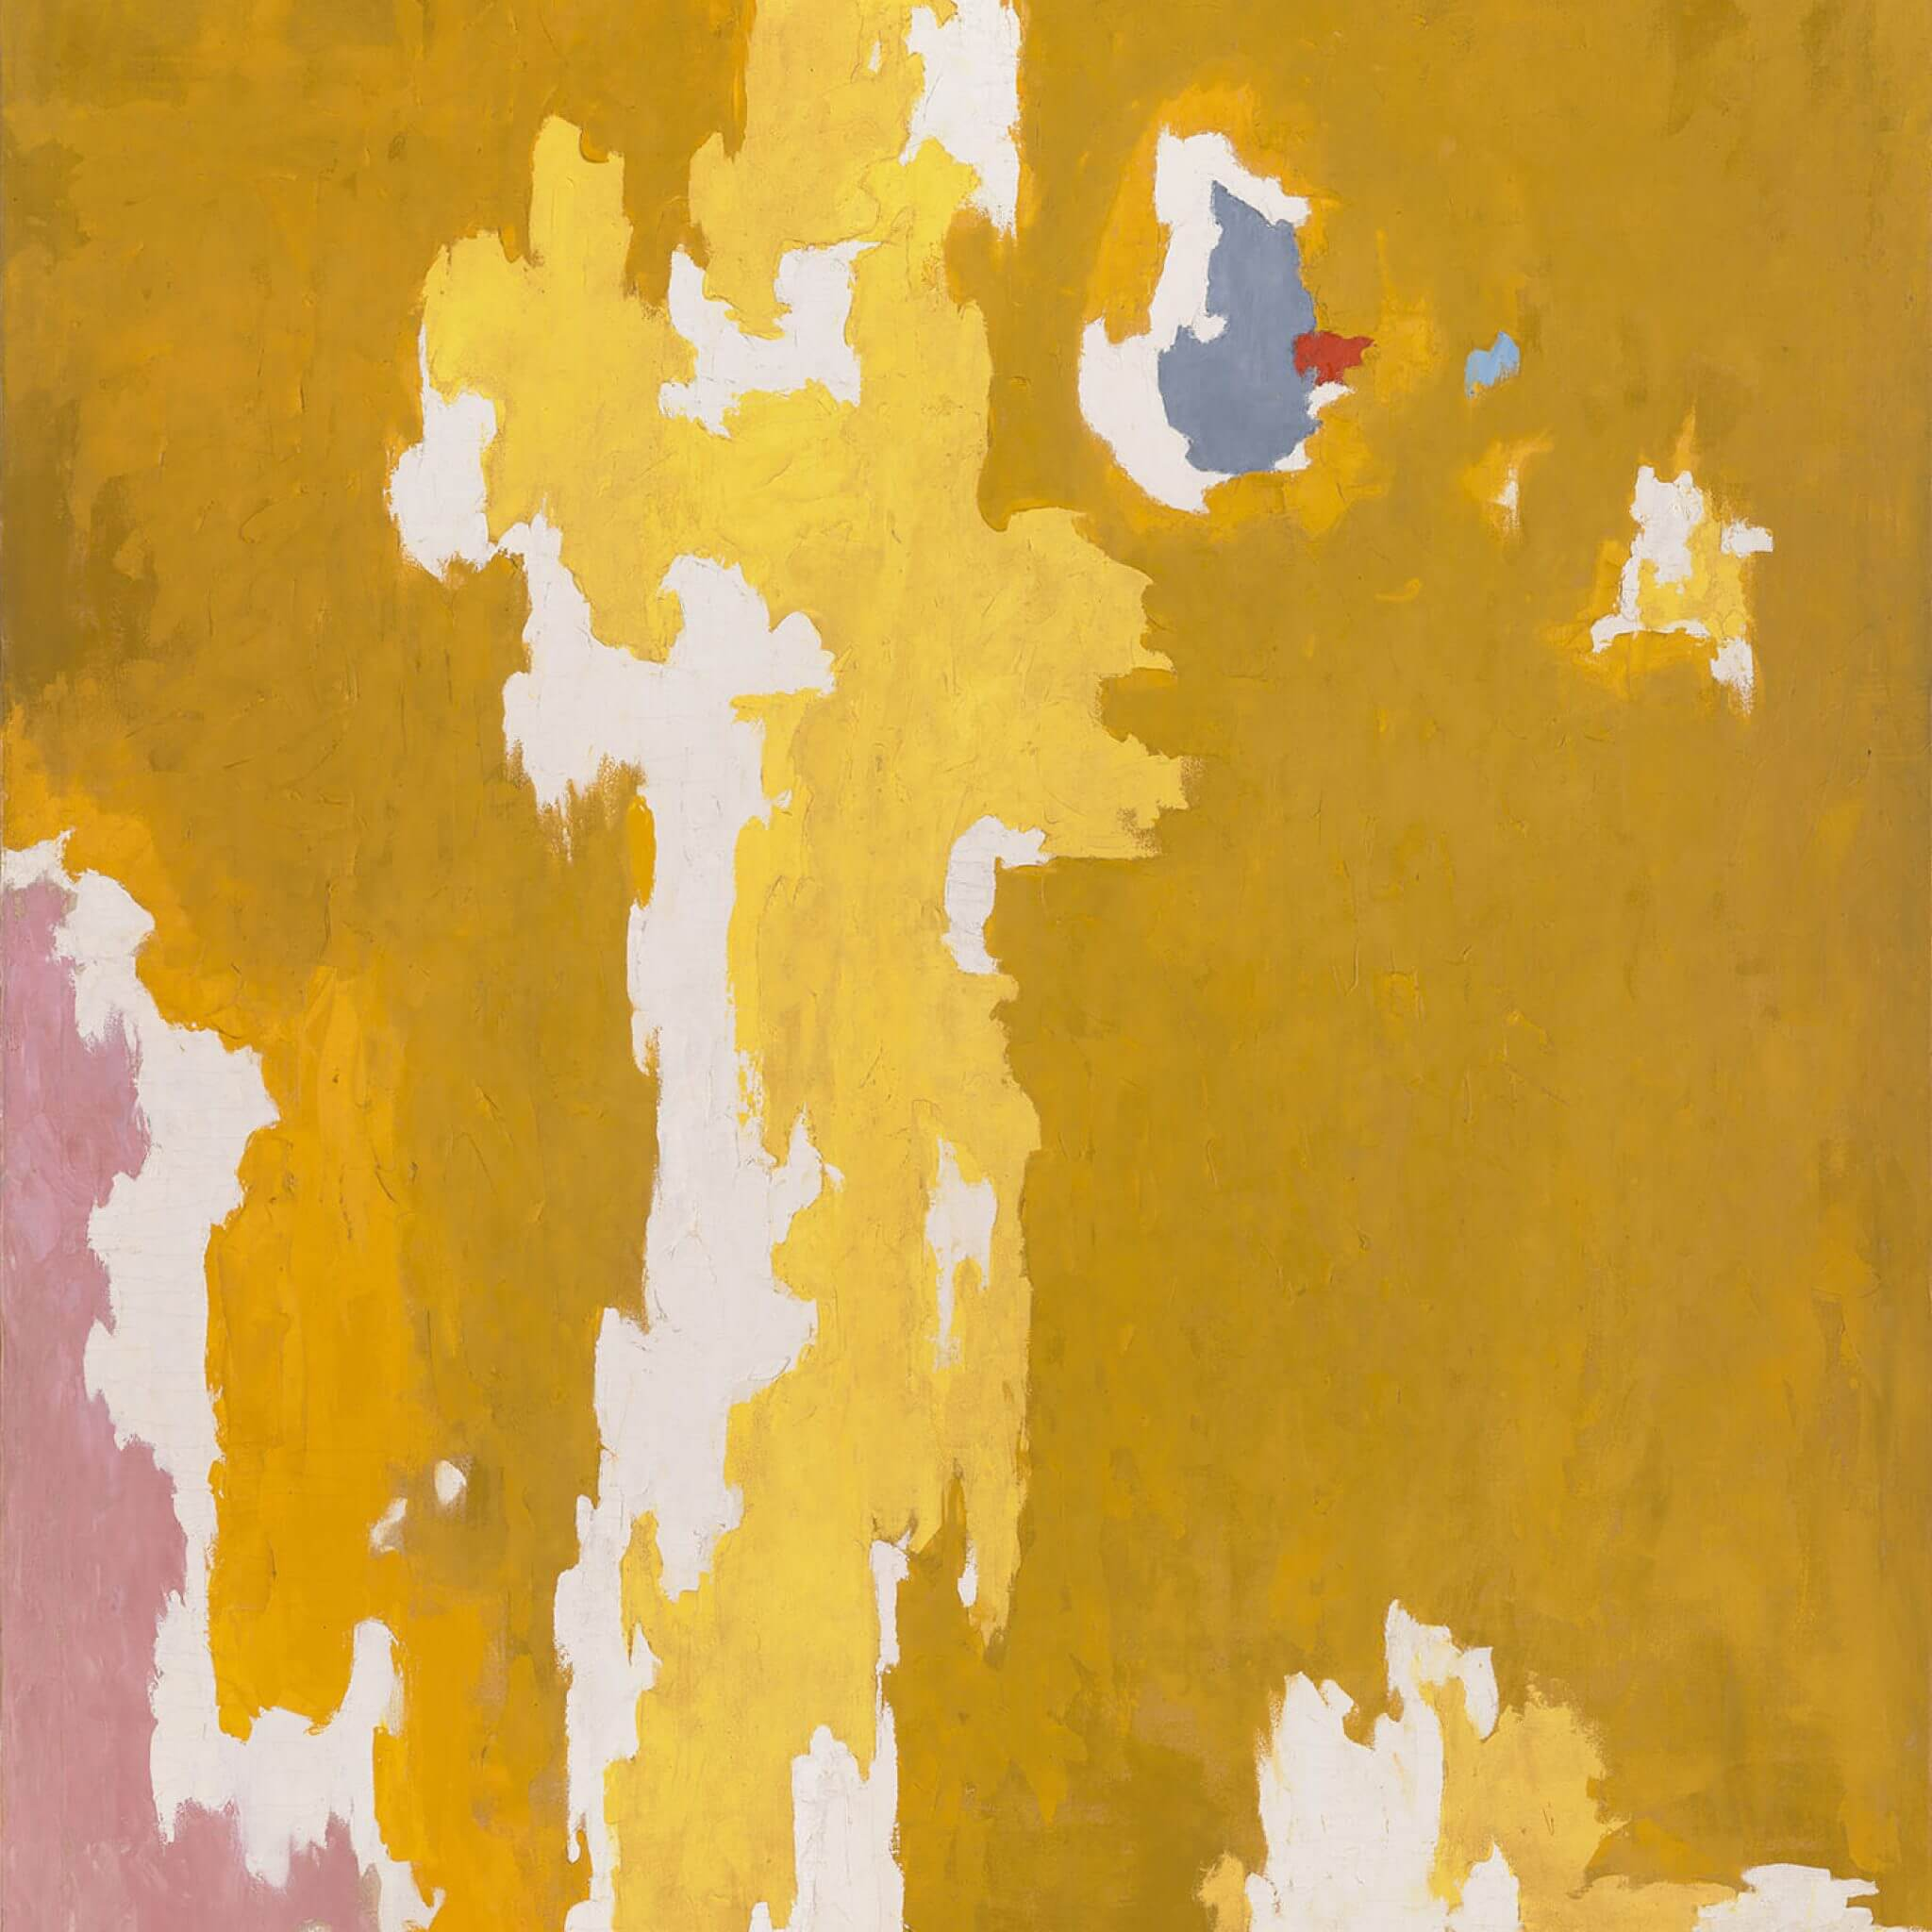 Abstract oil painting with yellow, gold, pink, bluish gray, and white paint and a small spot of red